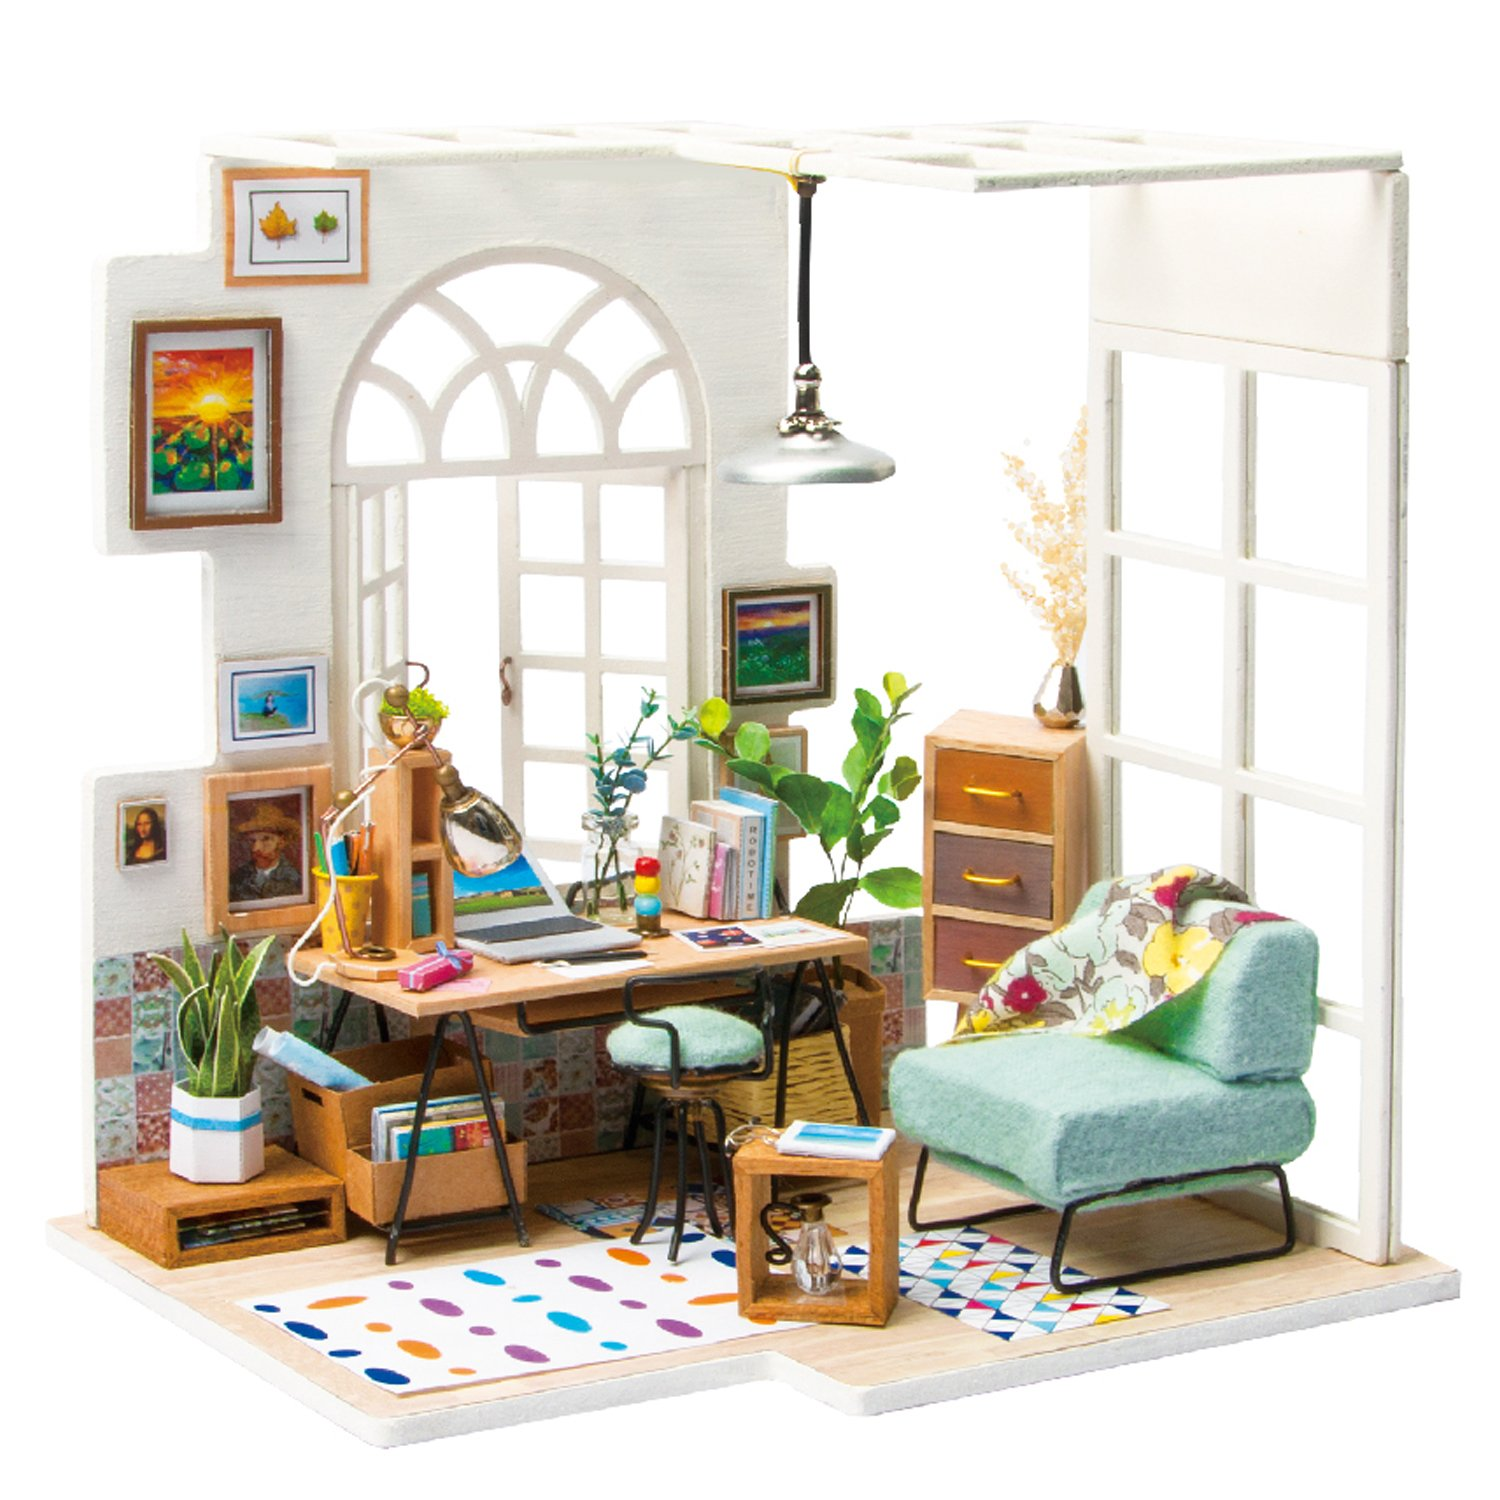 Rolife QLCRAFT DIY Balcony Miniature - Mini Doll House Model Kits to Build - Christmas Valentine's Birthday Gift for Girls … ROBOTIME